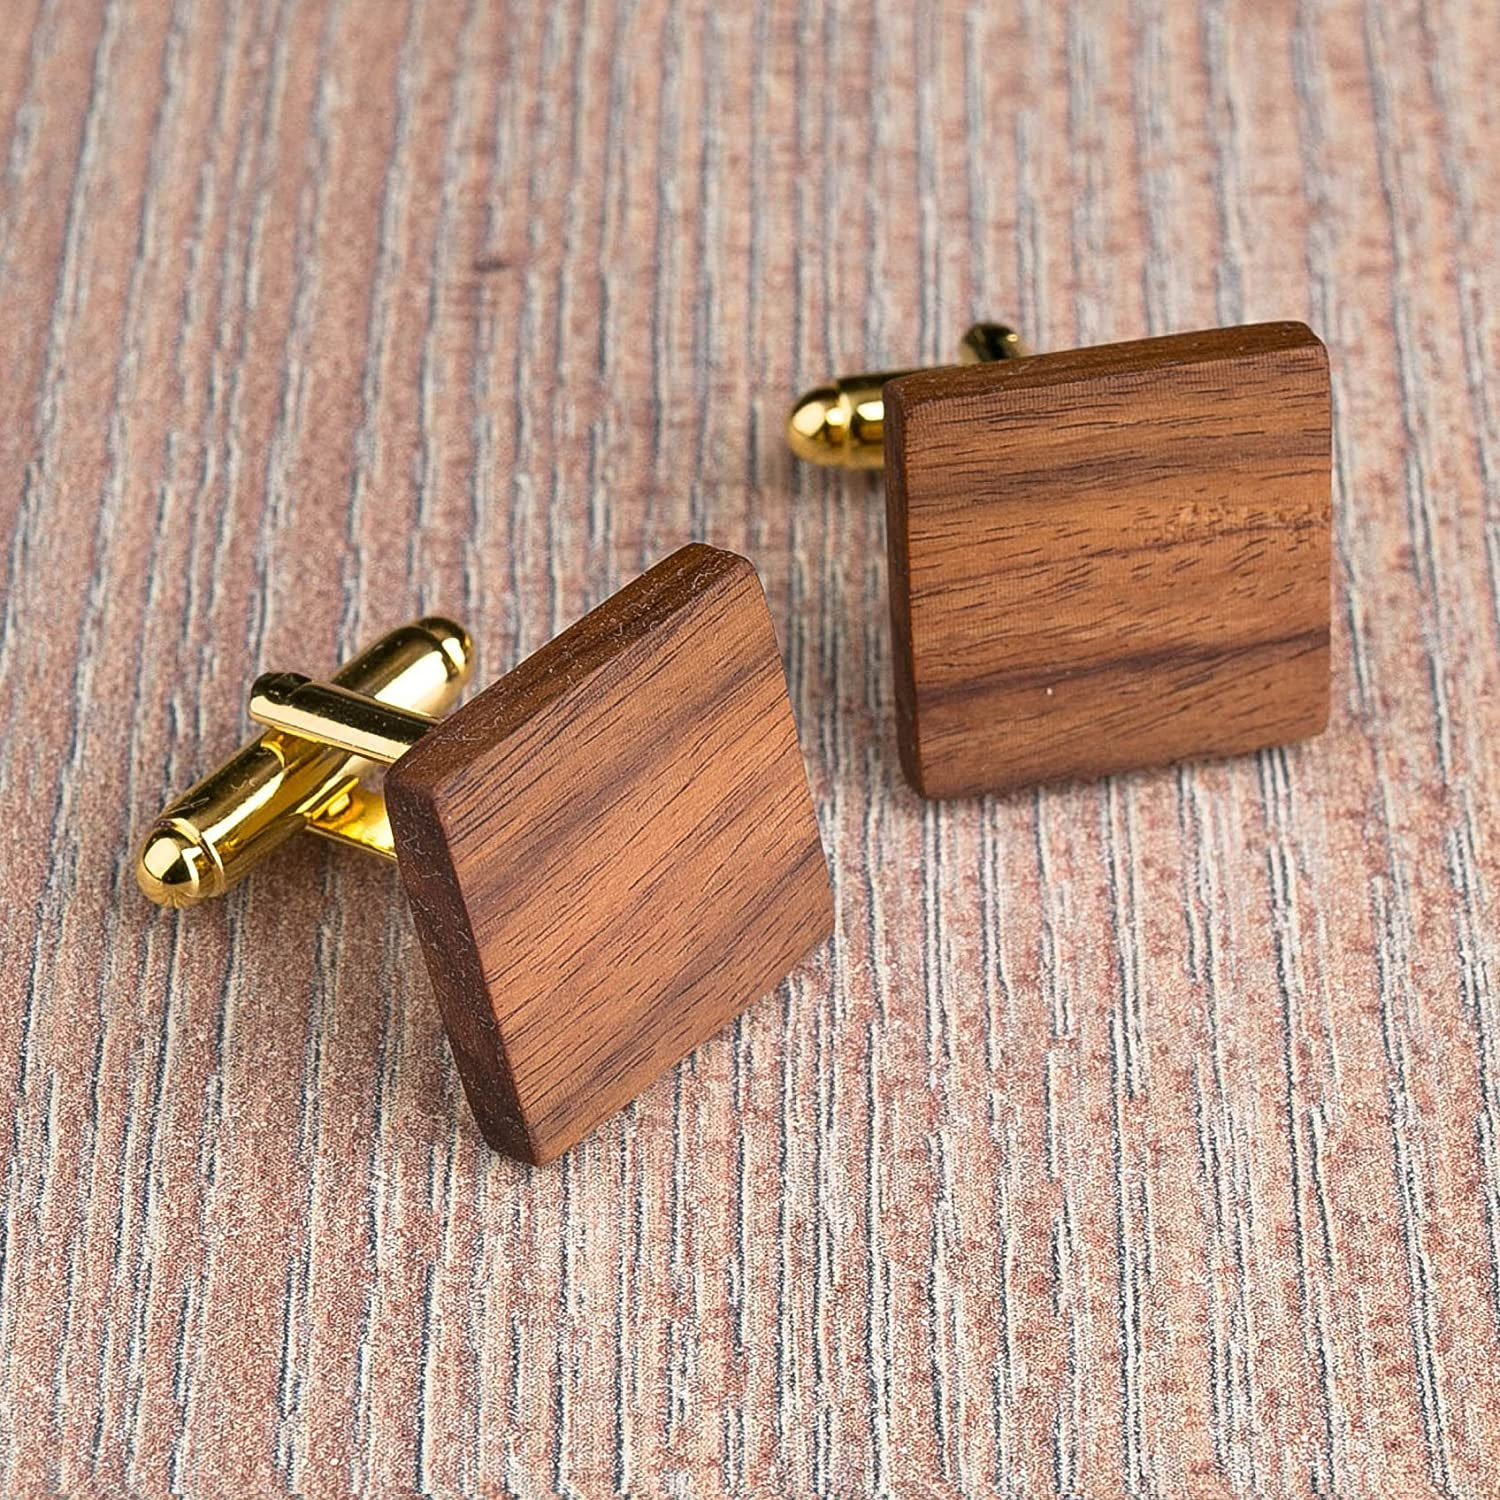 Free shipping: Rosewood Wood cufflinks. Brown Square cufflinks. Custom personalized initial monogram cufflinks. Natural wood engraved jewelry for men. Boss present. 4 base color. Wedding groomsmen groom gifts